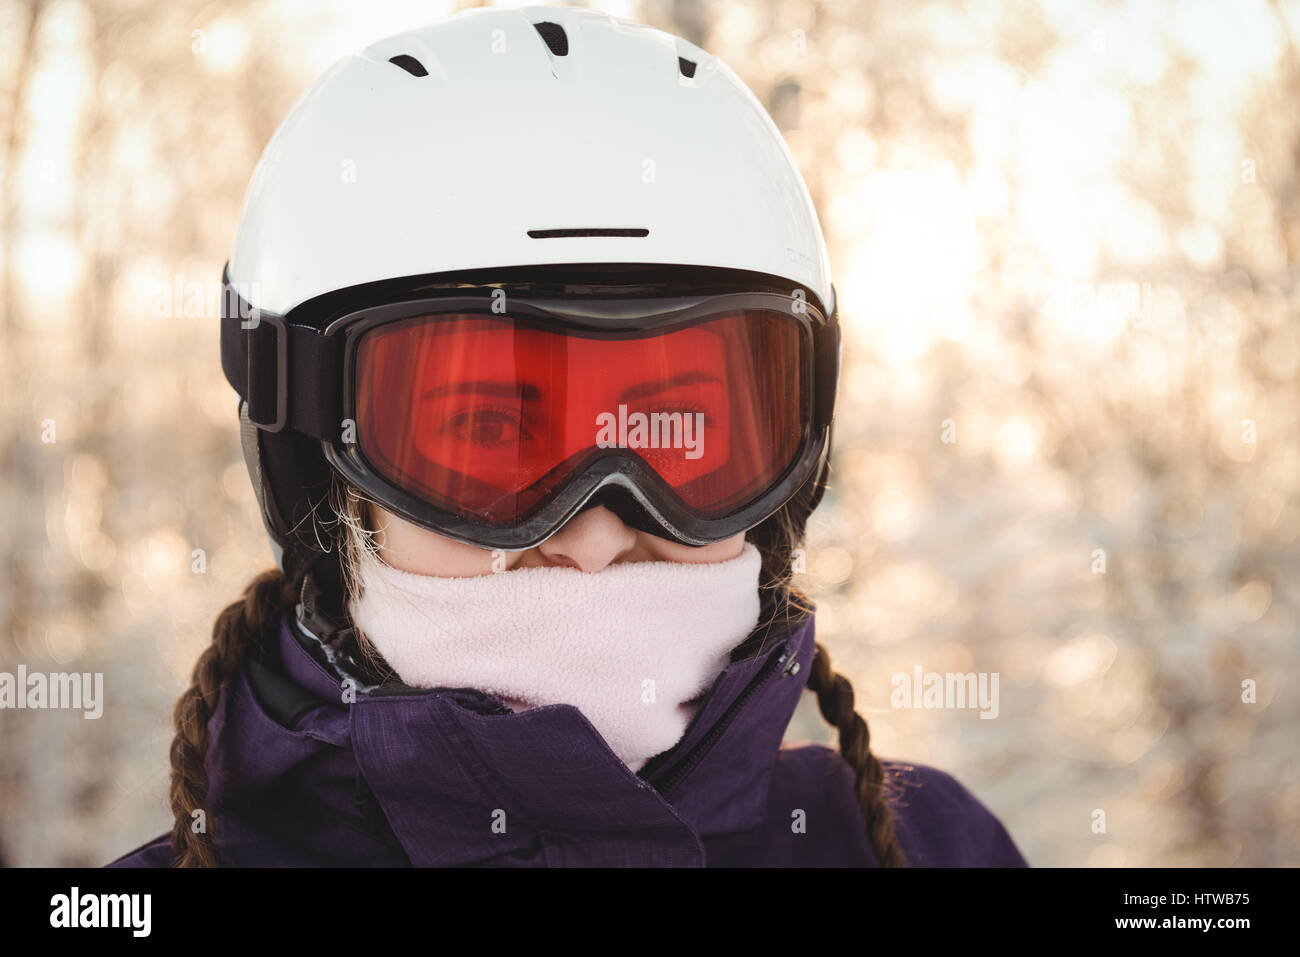 Woman in ski goggles and jacket - Stock Image